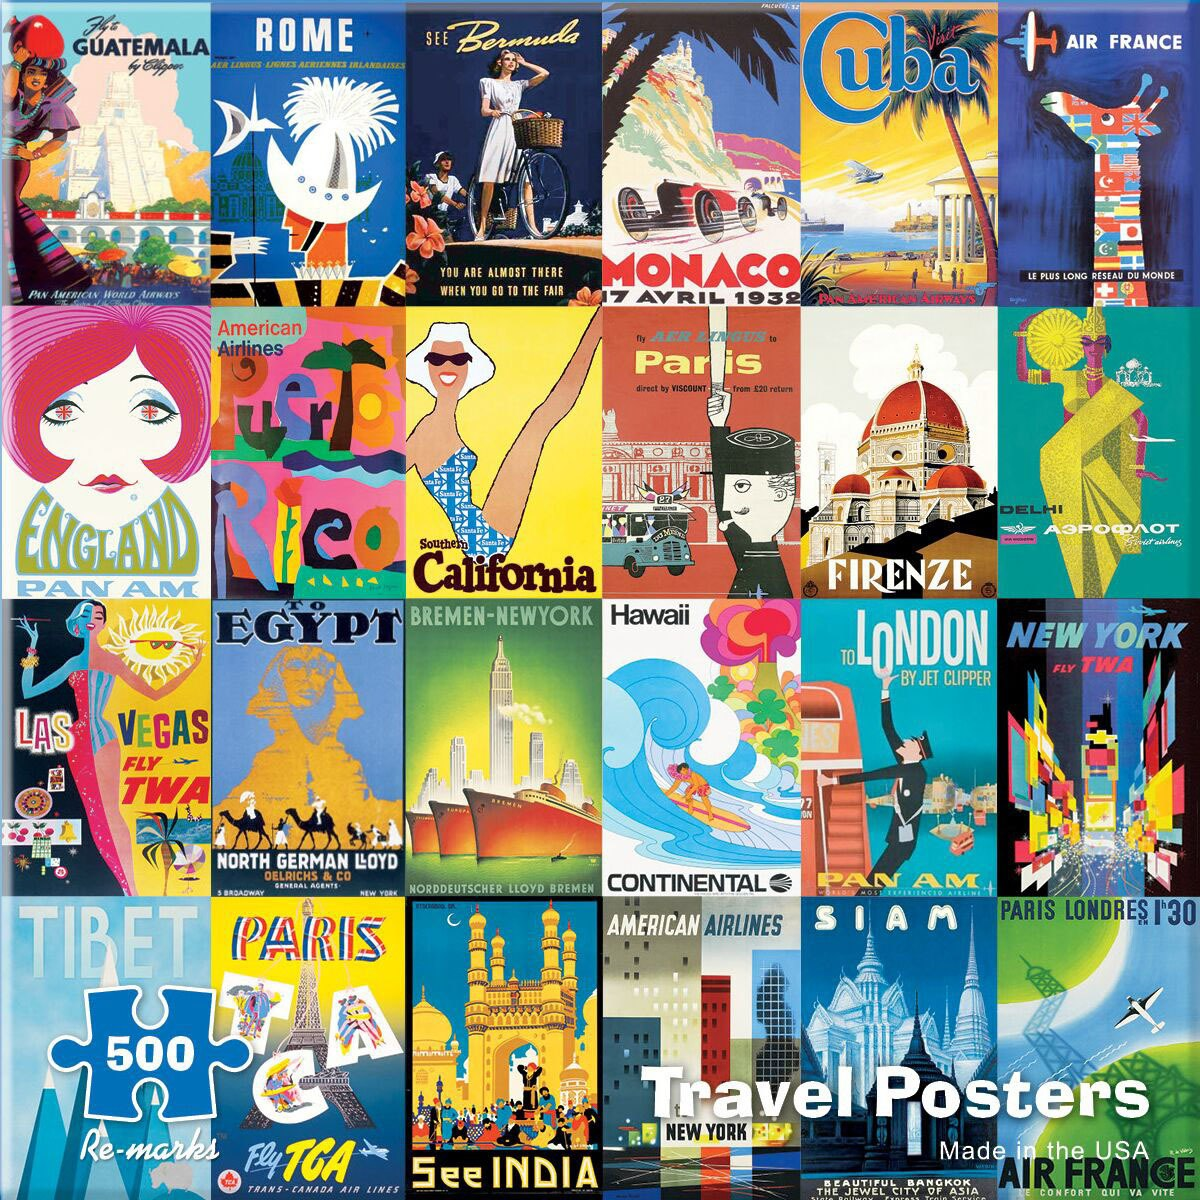 Travel Posters - 500pc Jigsaw Puzzle By Re-marks  			  					NEW